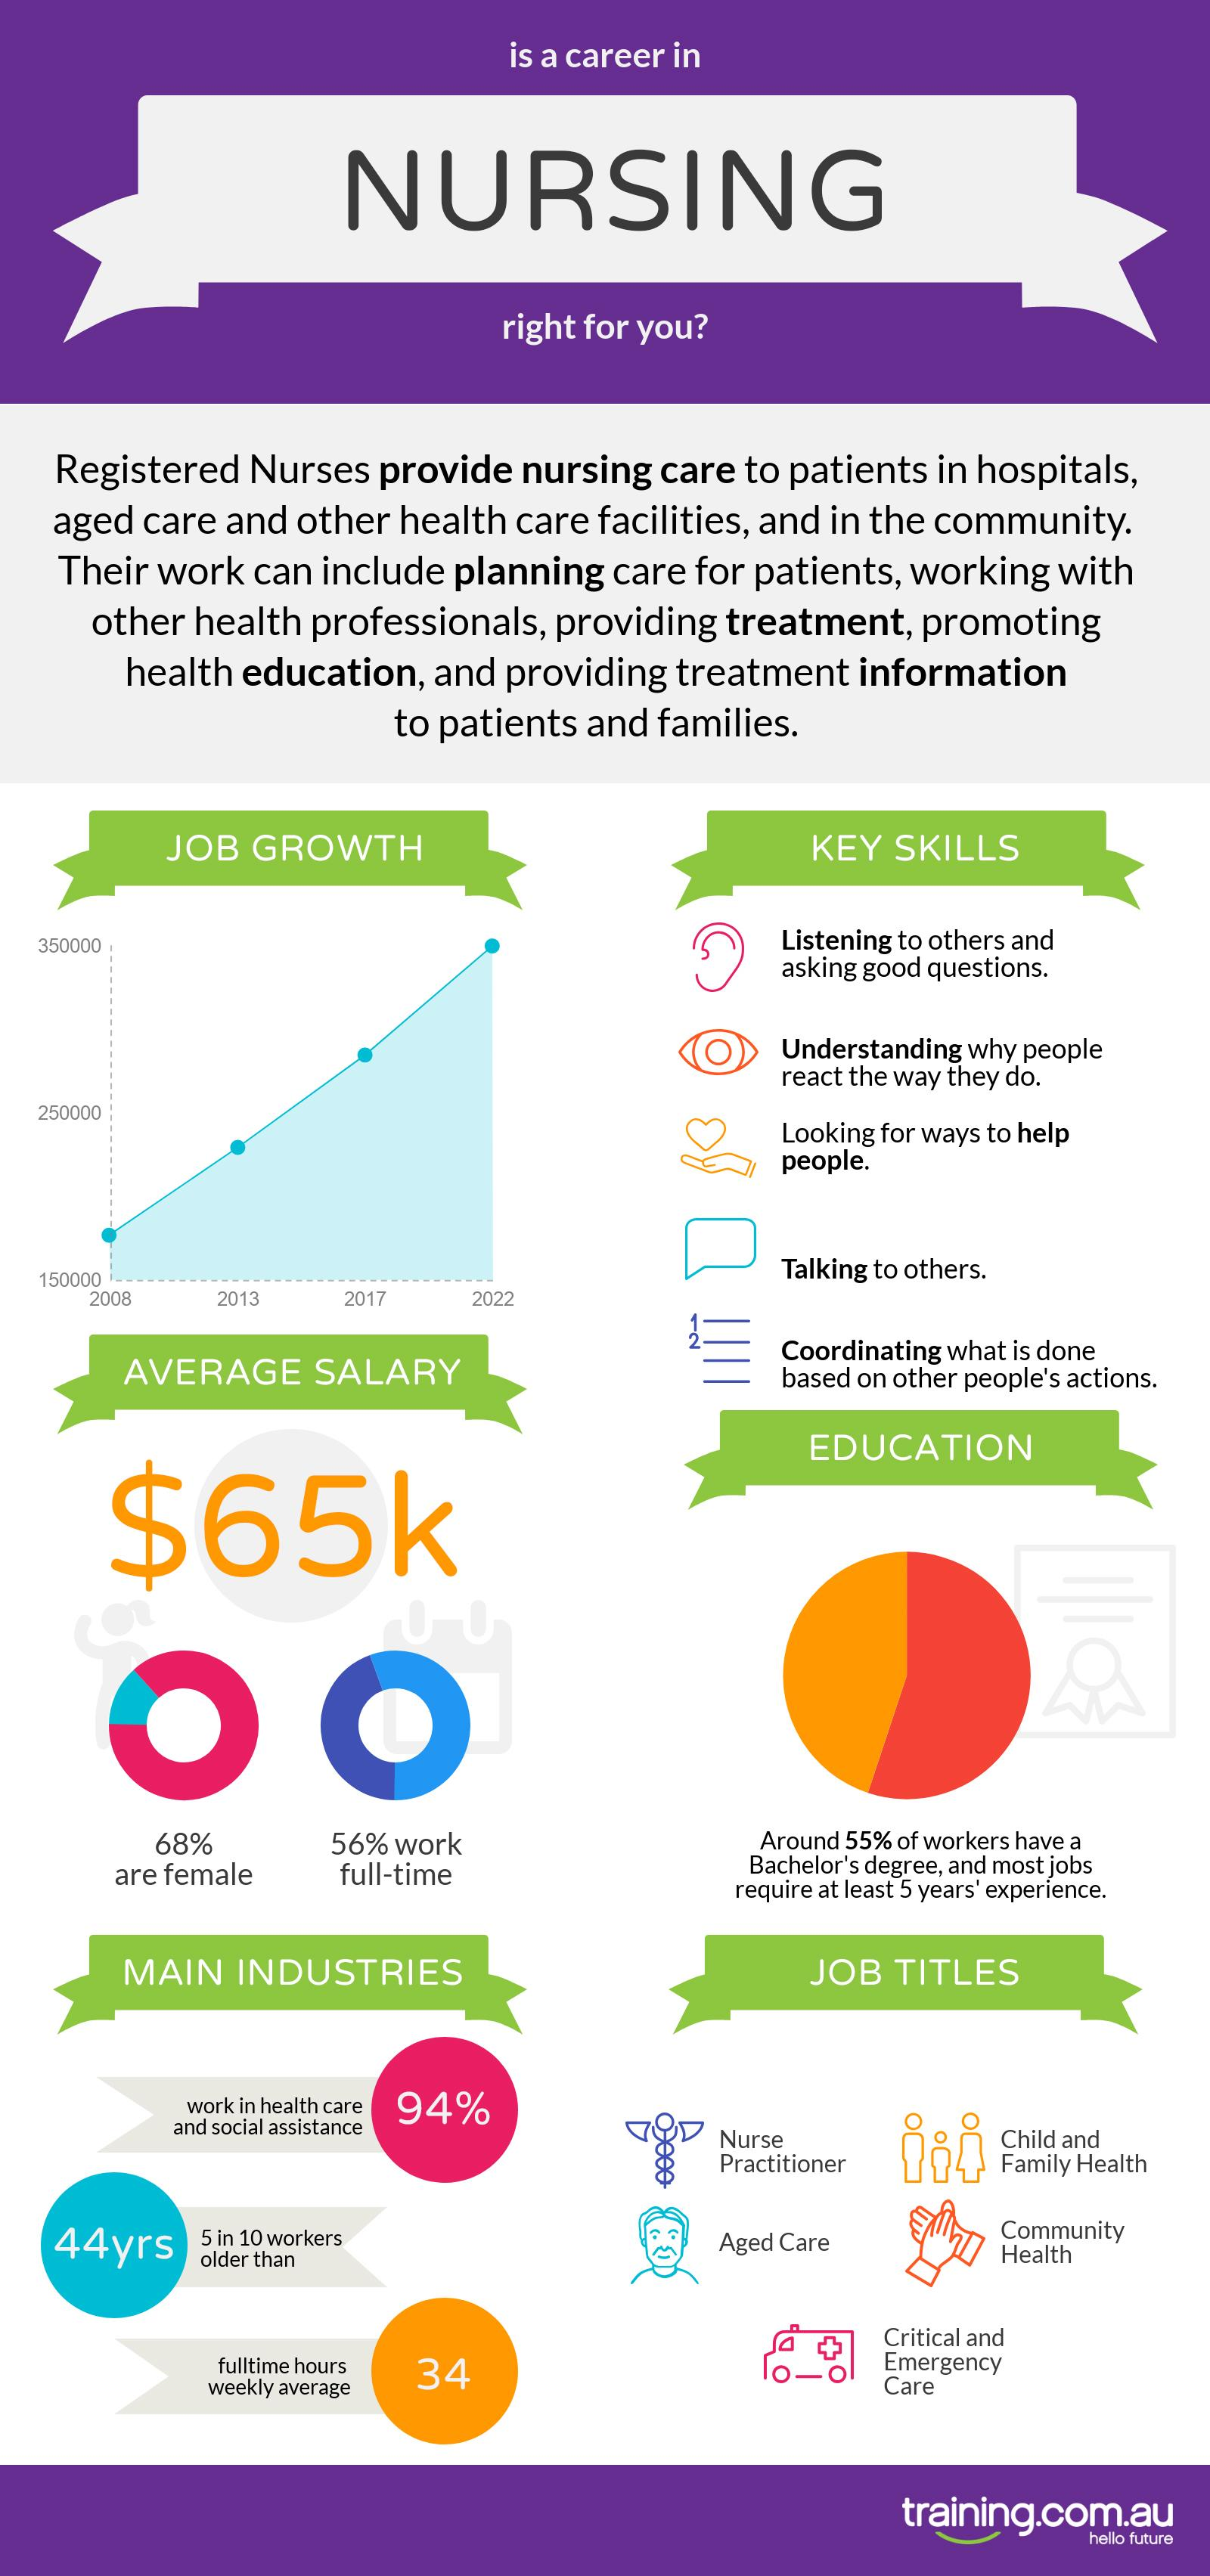 nursing-infographic-trainingcomau